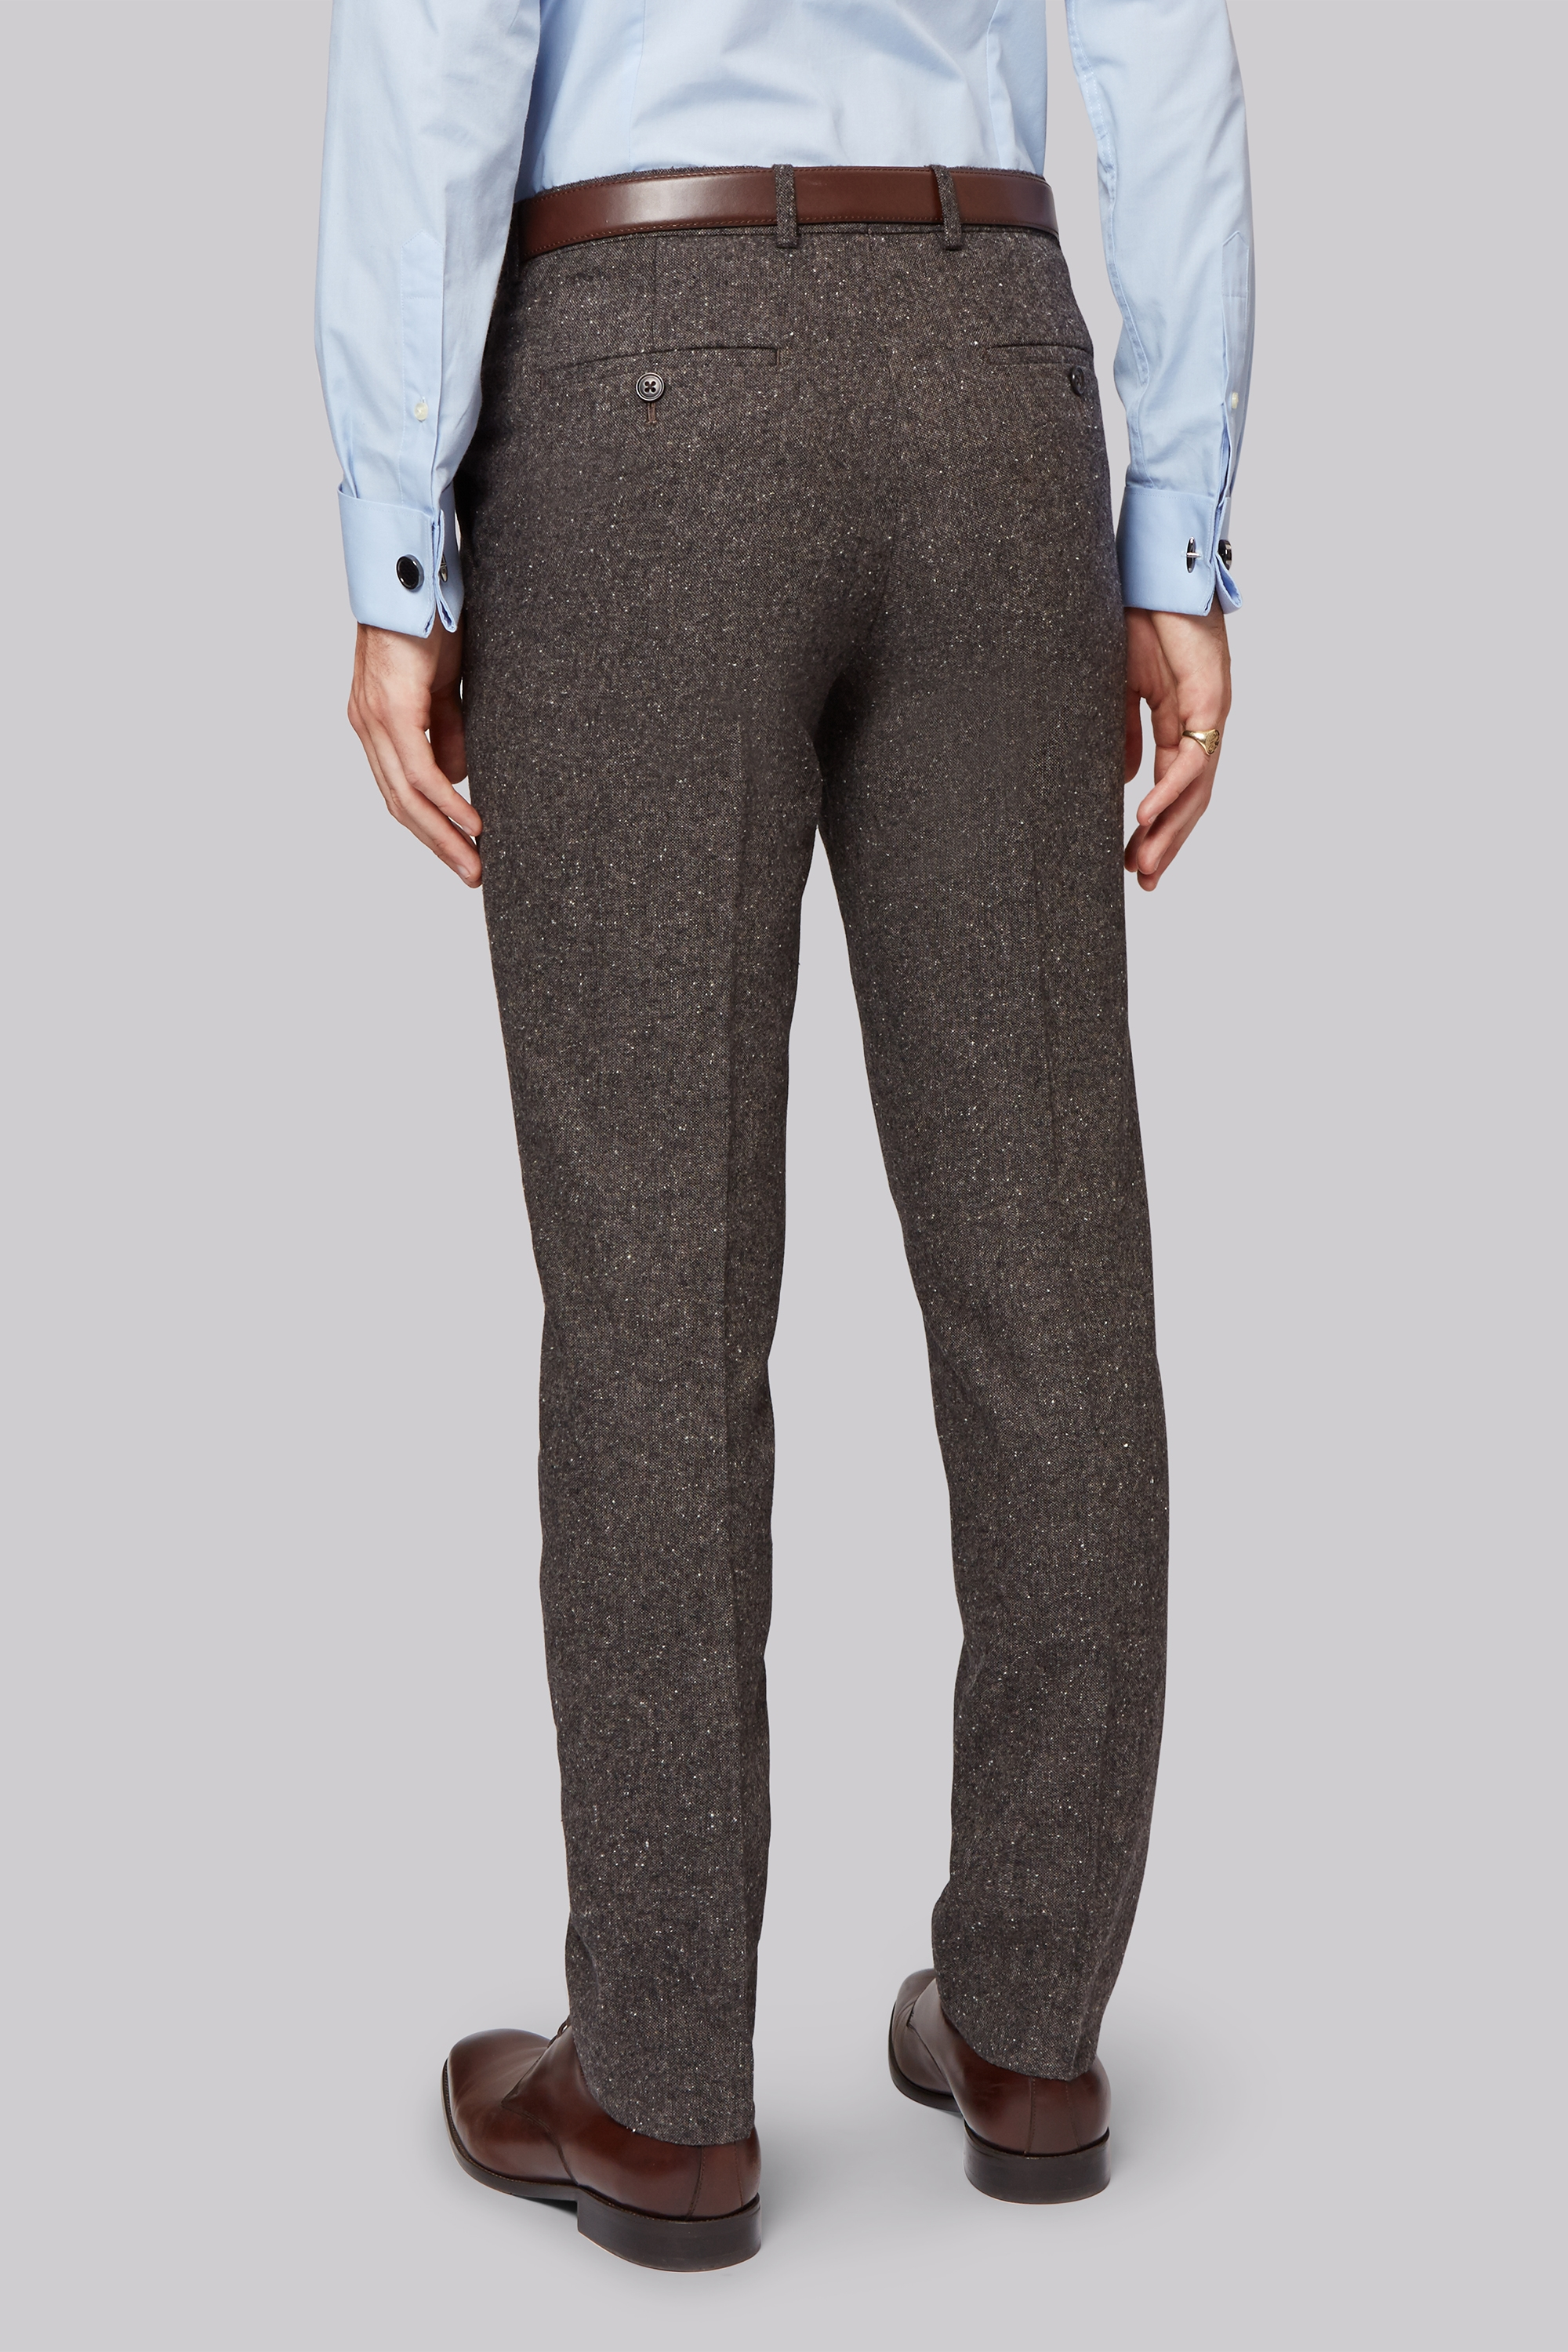 Find tweed pants from a vast selection of Clothing for Men. Get great deals on eBay!